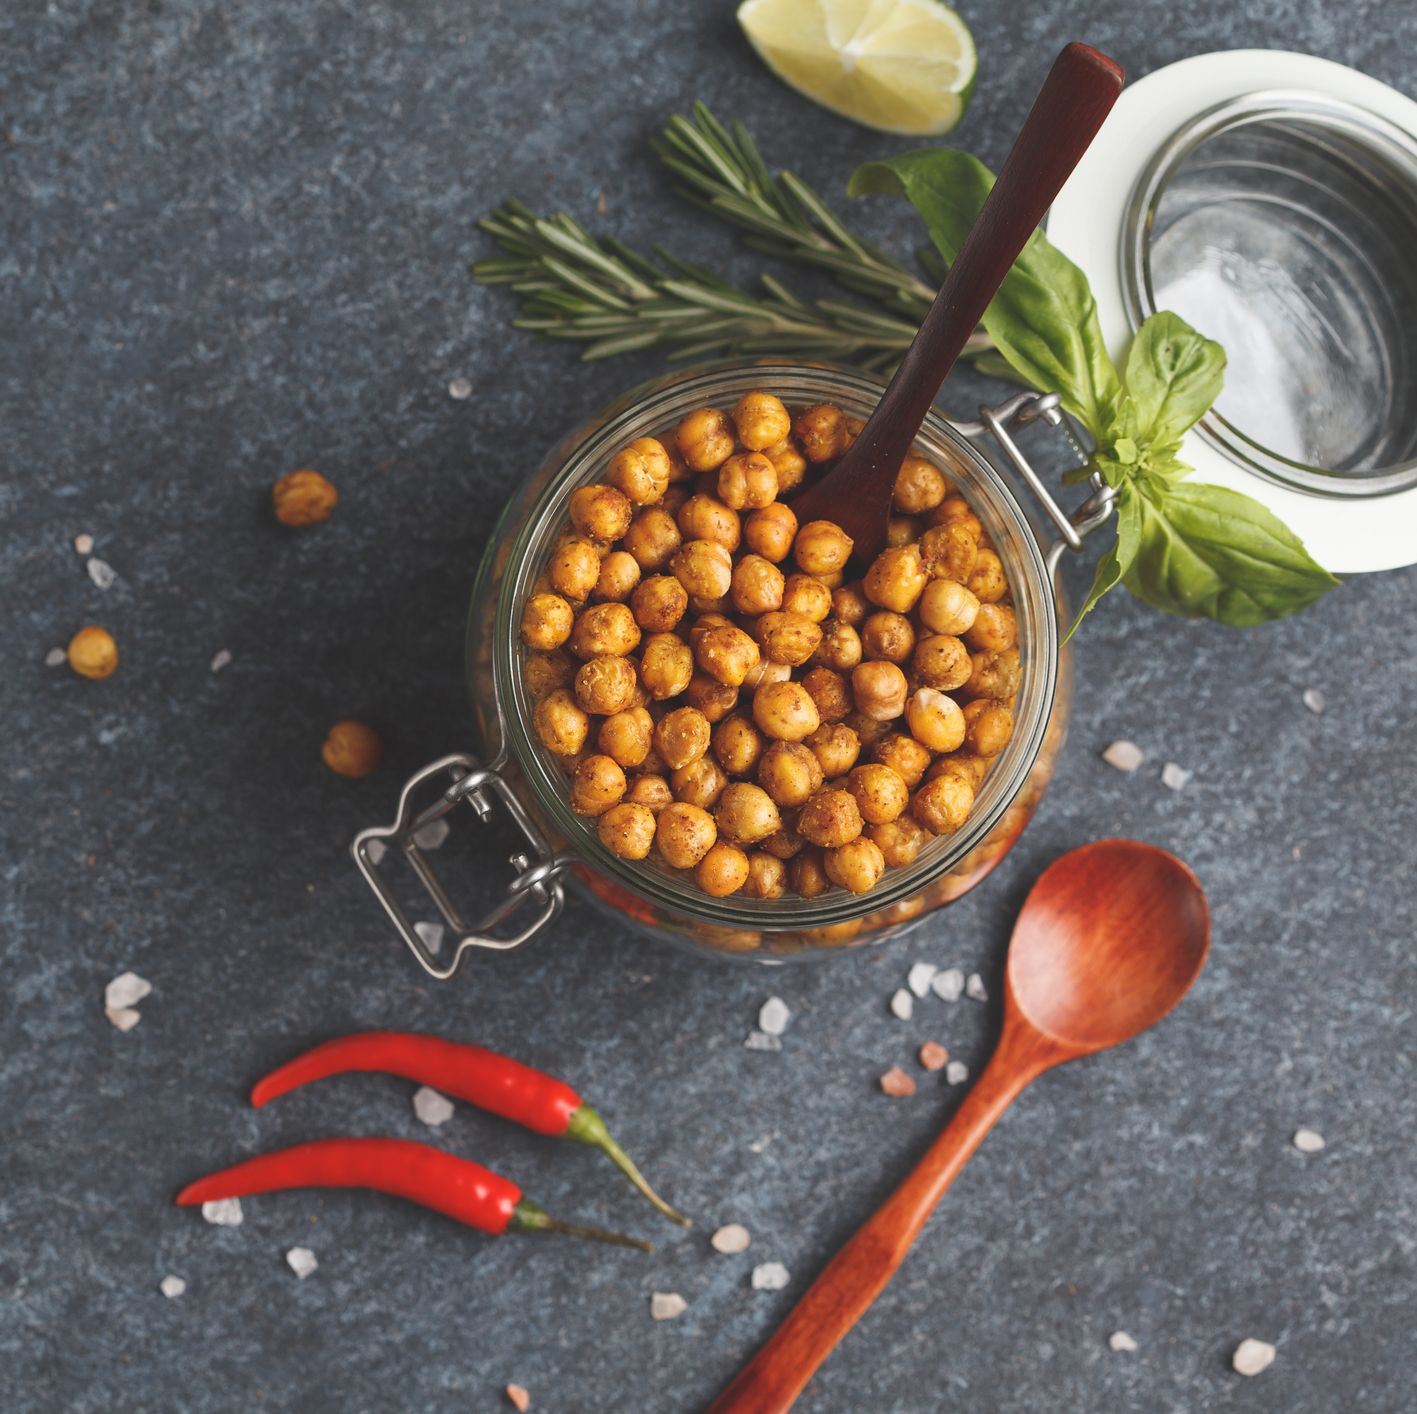 Healthy snack - baked spicy chickpeas in a glass jar, top view, copy space. Healthy vegan food concept.